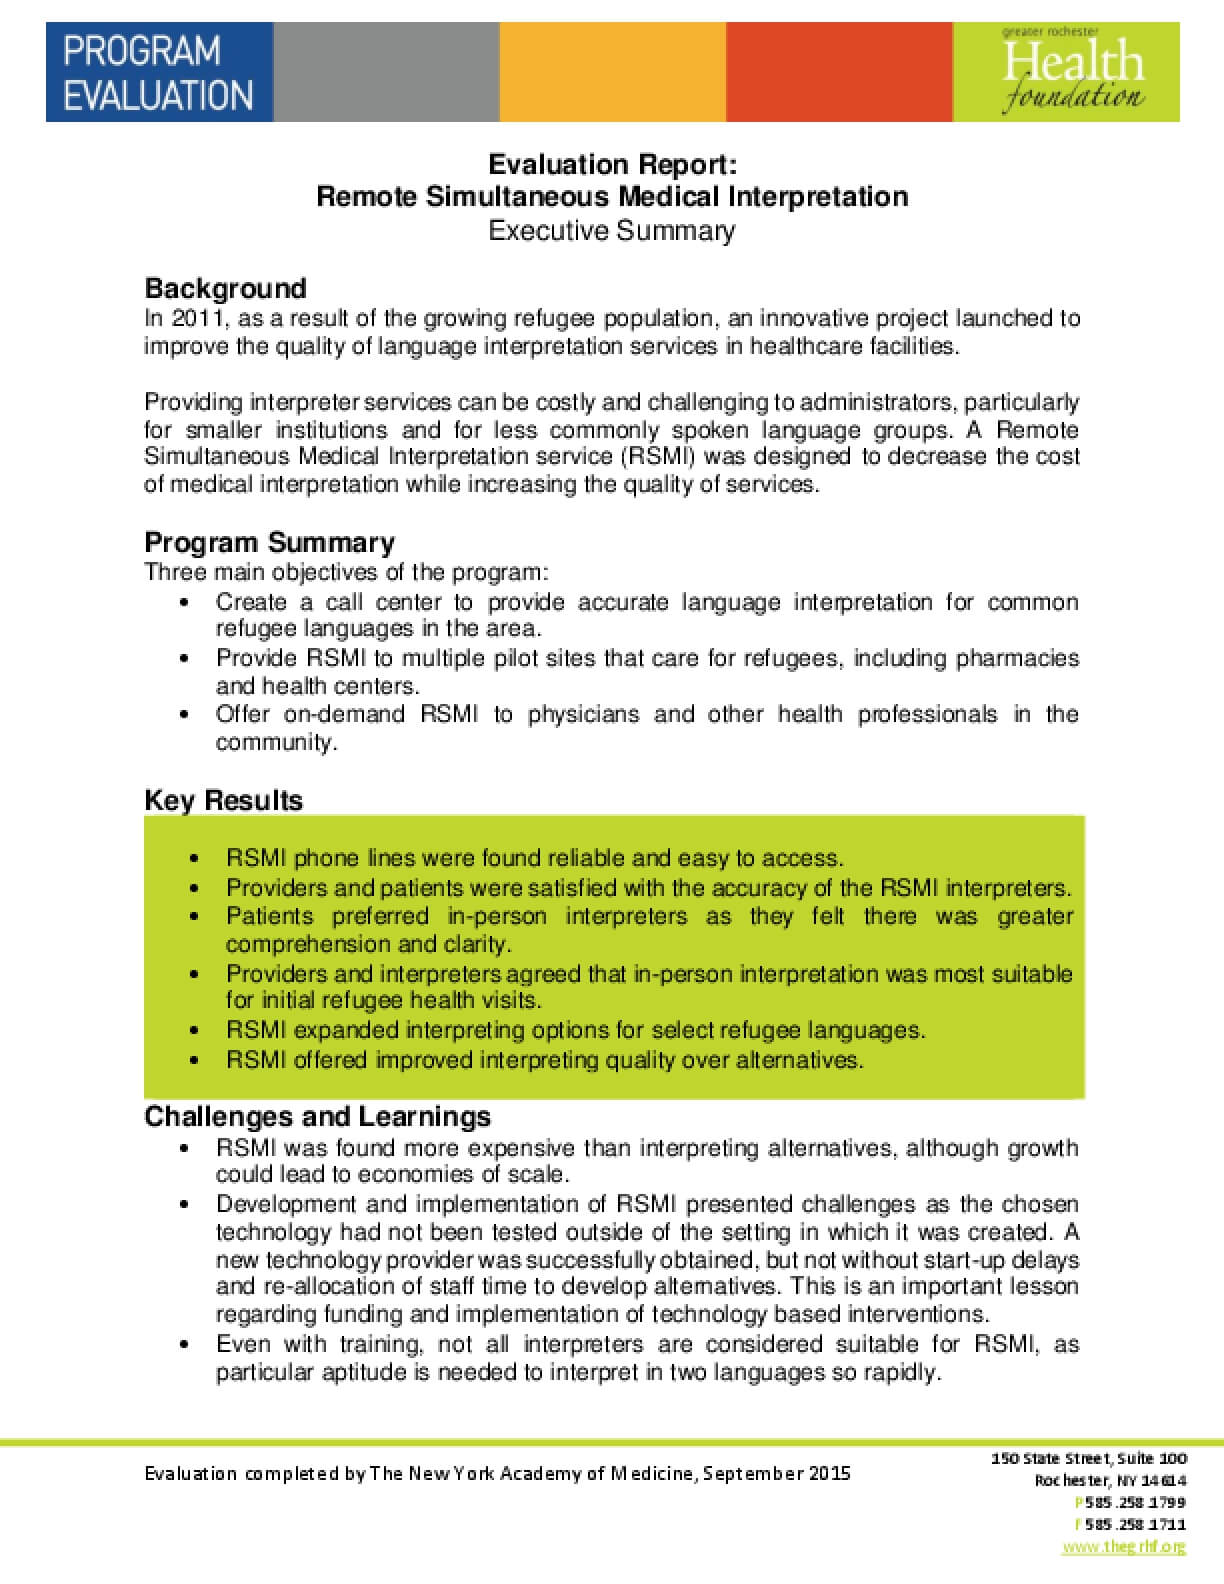 Evaluation Report: Remote Simultaneous Medical Interpretation Executive Summary